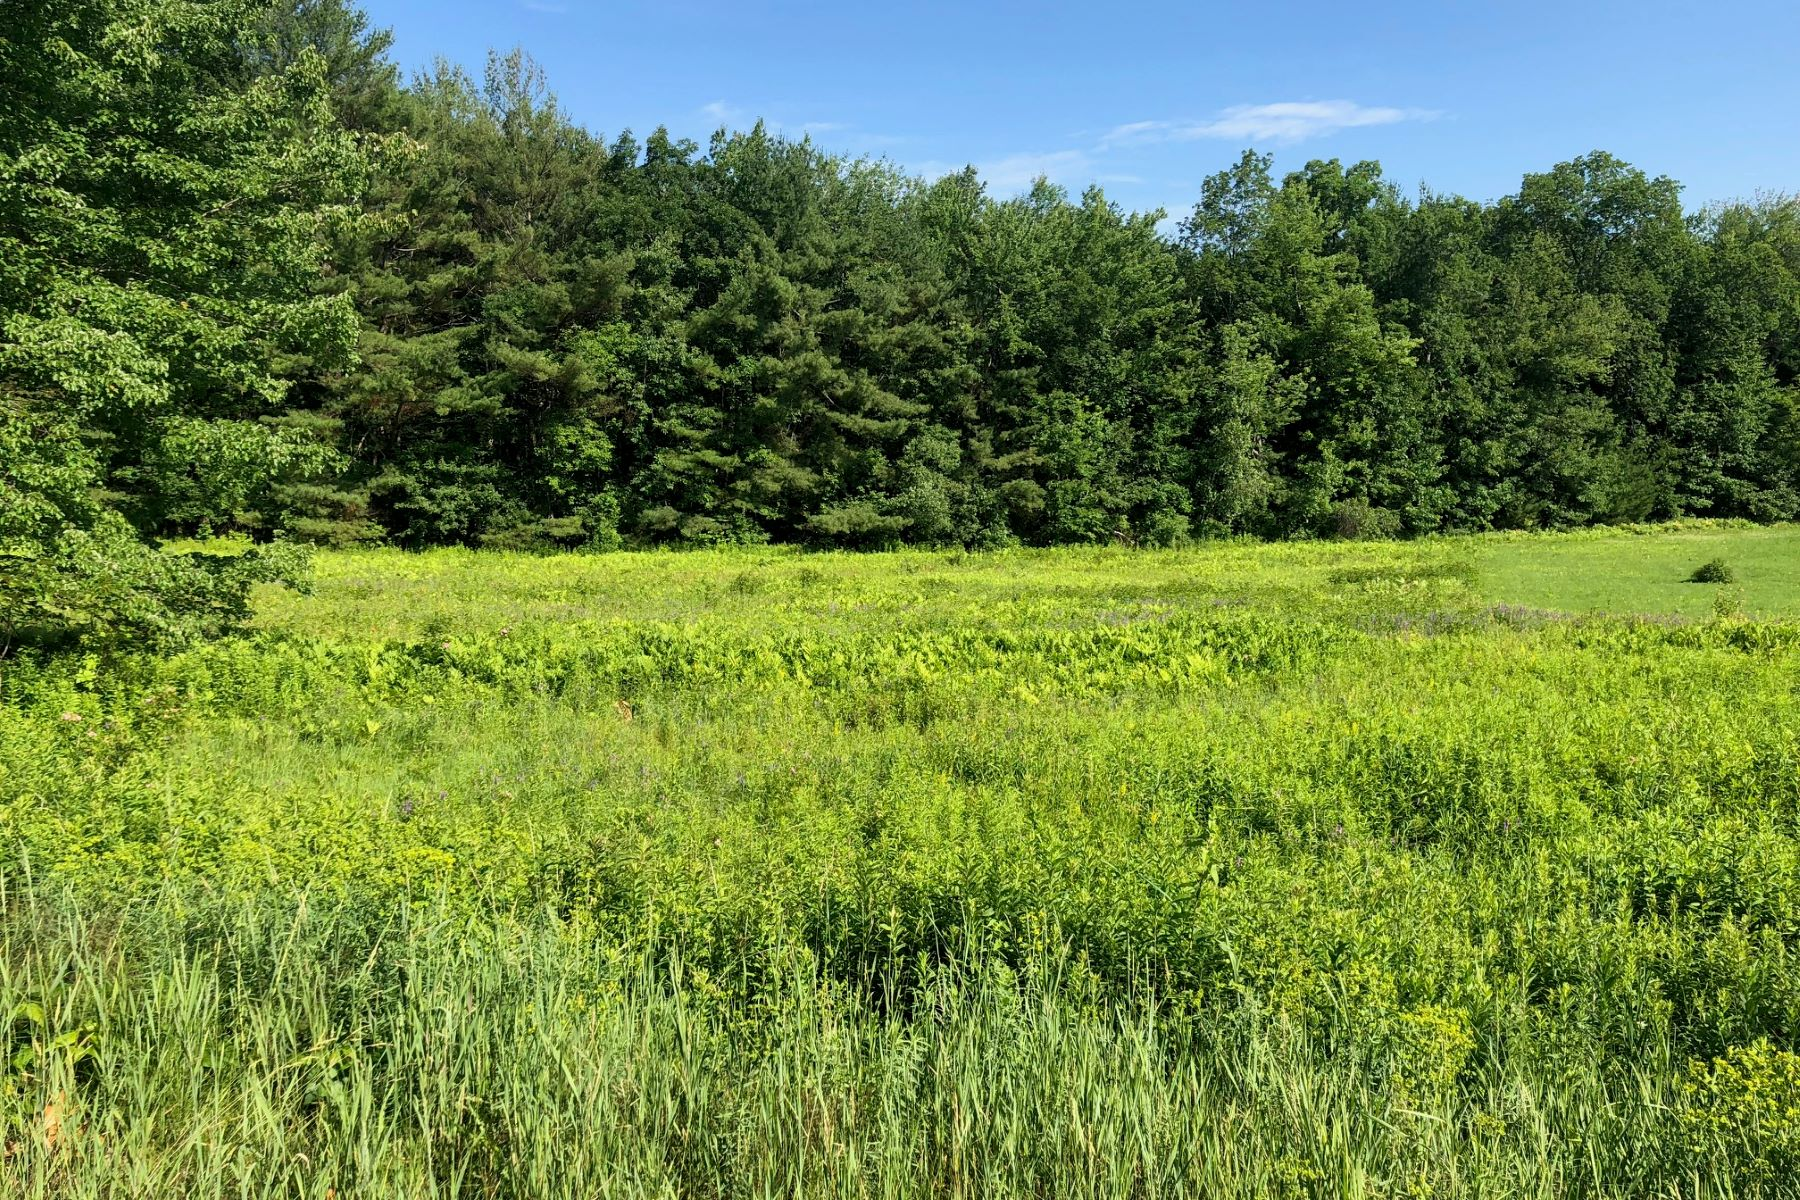 Land for Sale at 231 Sandown Road, Chester 231 Sandown Rd Chester, New Hampshire 03036 United States